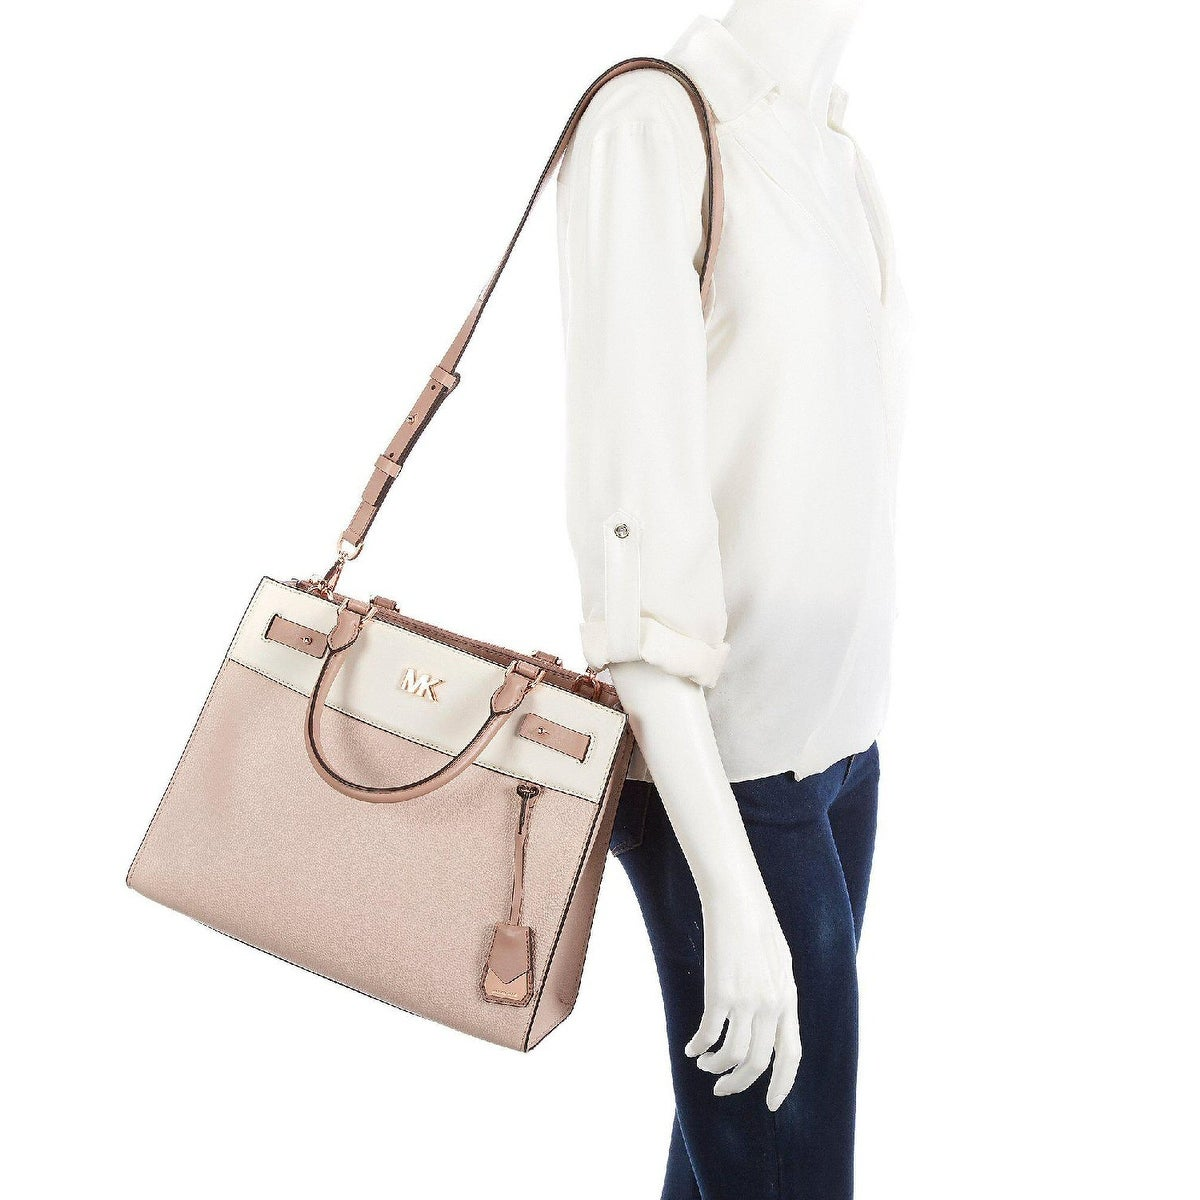 9e339fe79fd8 Shop MICHAEL Michael Kors Reagan Large Leather Satchel Soft Pink/Light  Cream/Fawn - One Size - Free Shipping Today - Overstock - 27296242